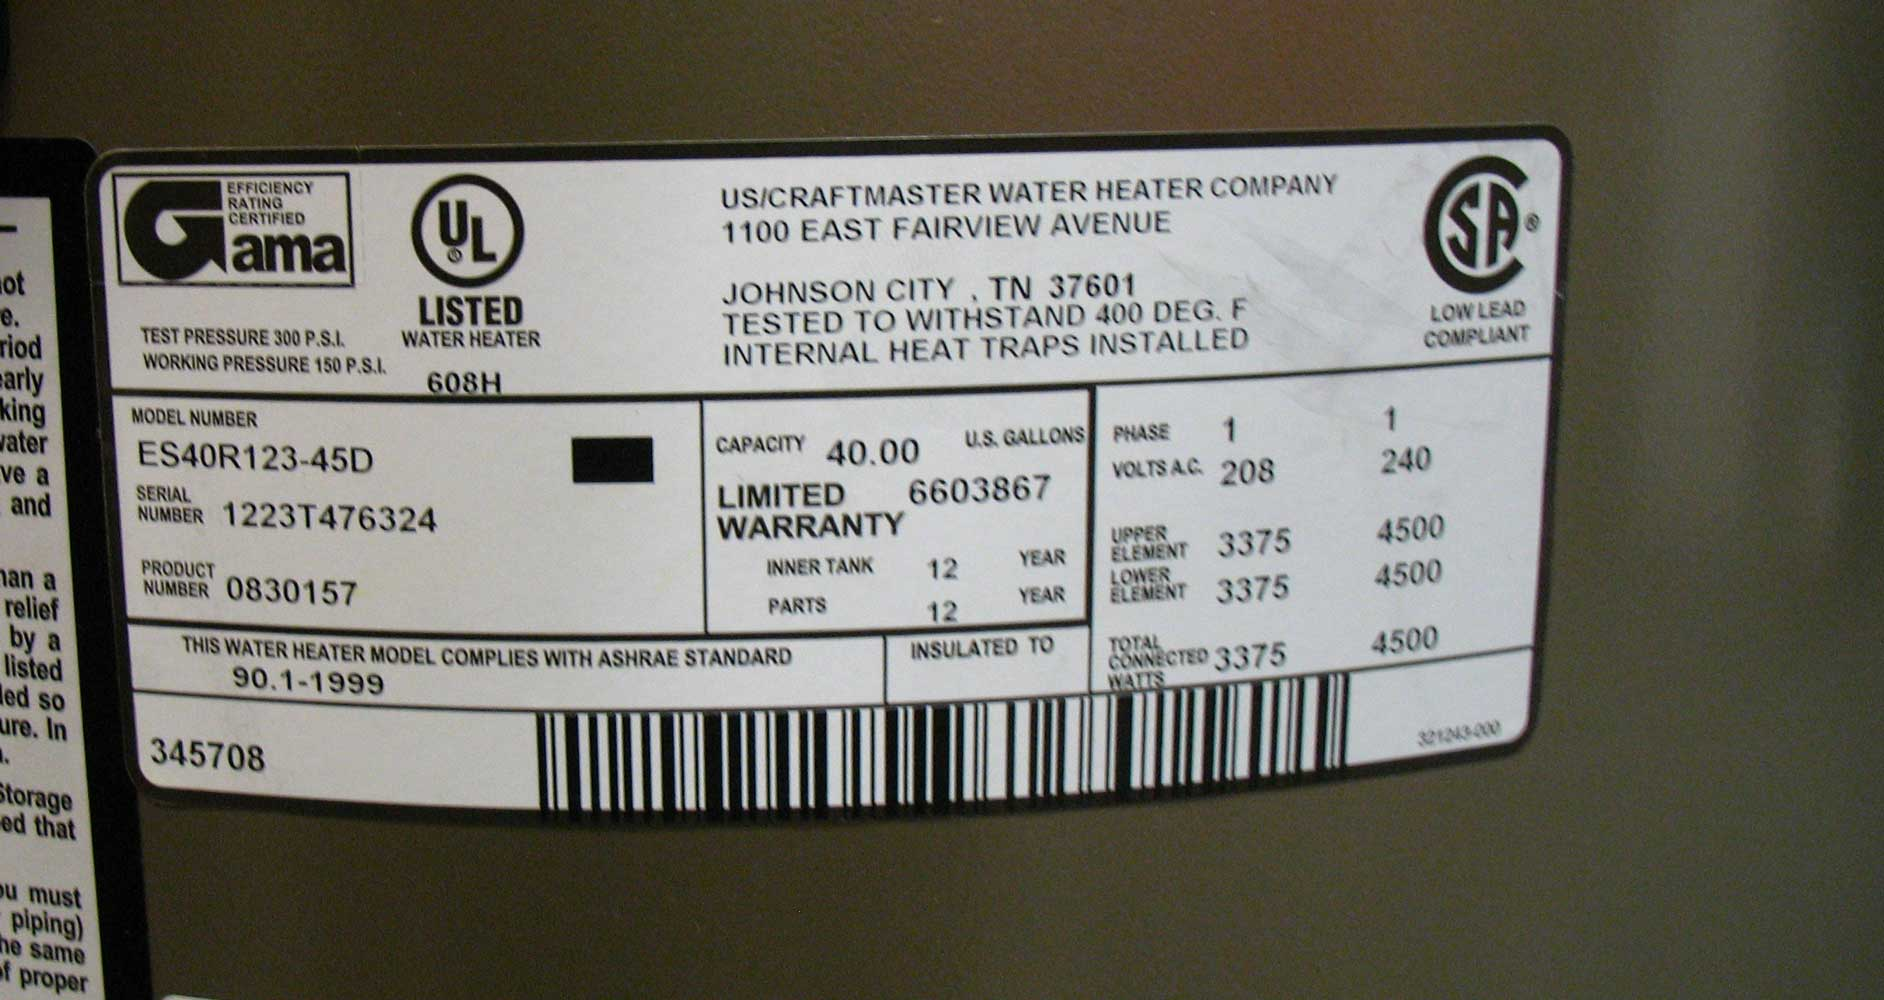 hight resolution of see larger image different water heater label 4500 watts 240volts label shows 4500 watt elements 240volt total connected 4500 watts which means both